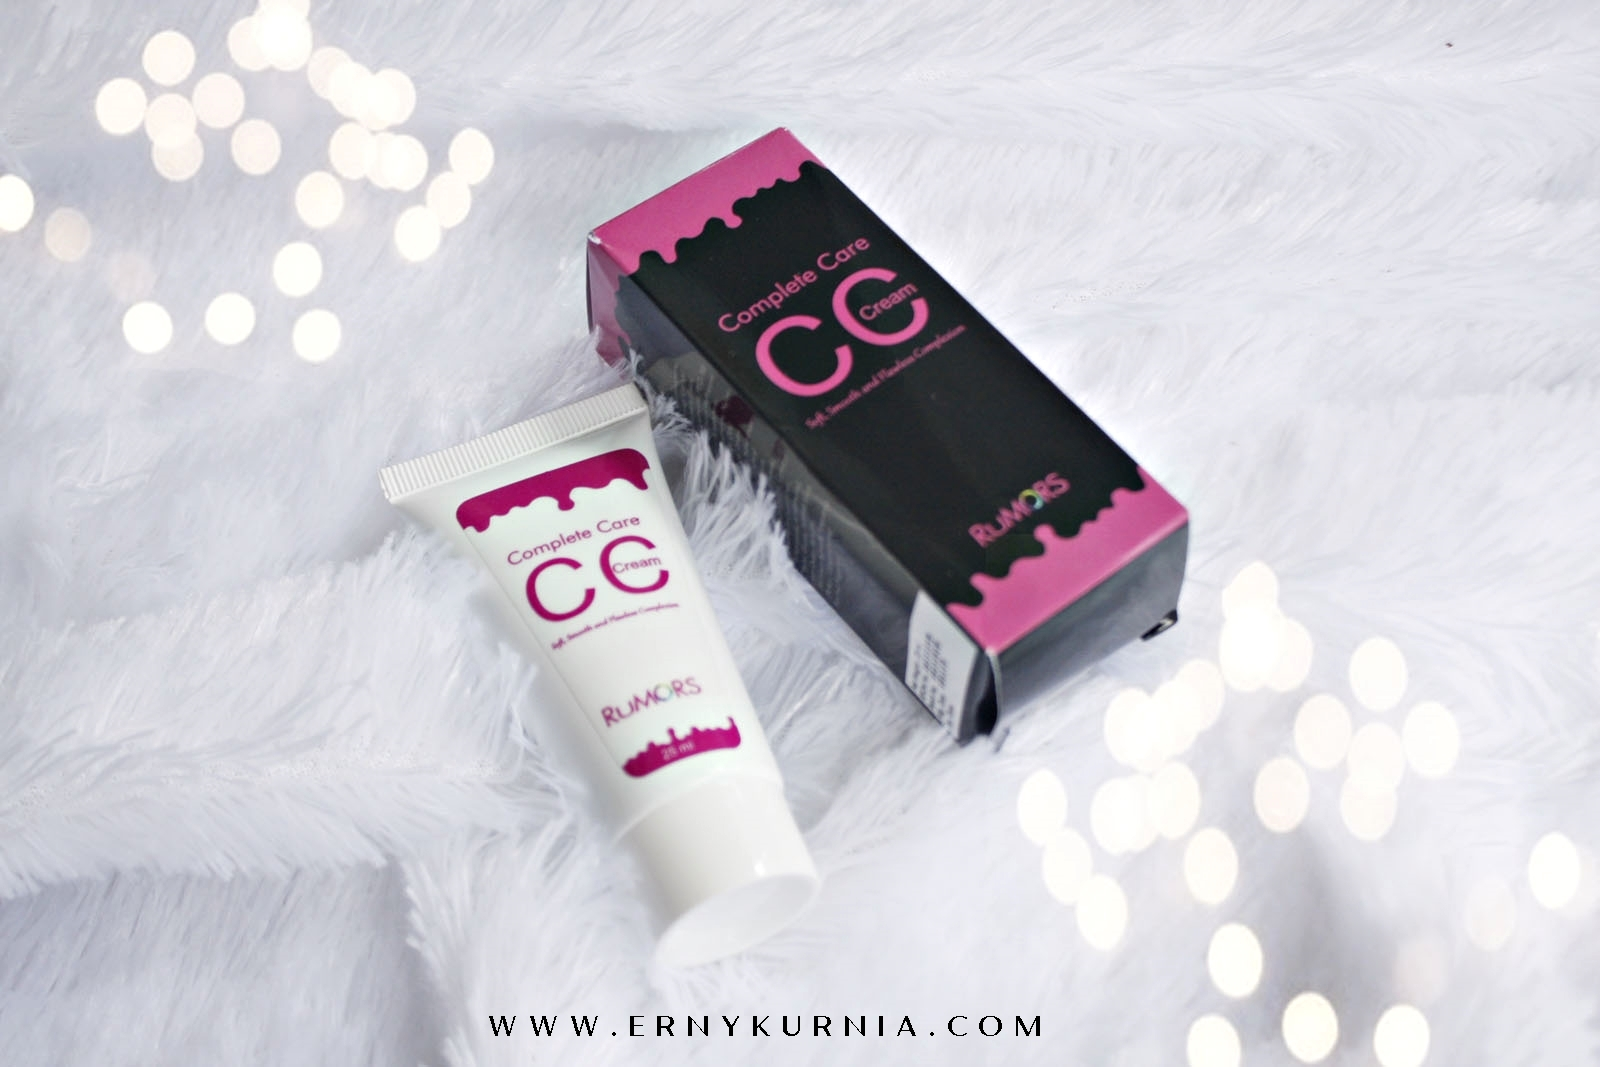 Rumors Cosmetics, CC Cream Rumors Cosmetics, CC Cream, Local Brand